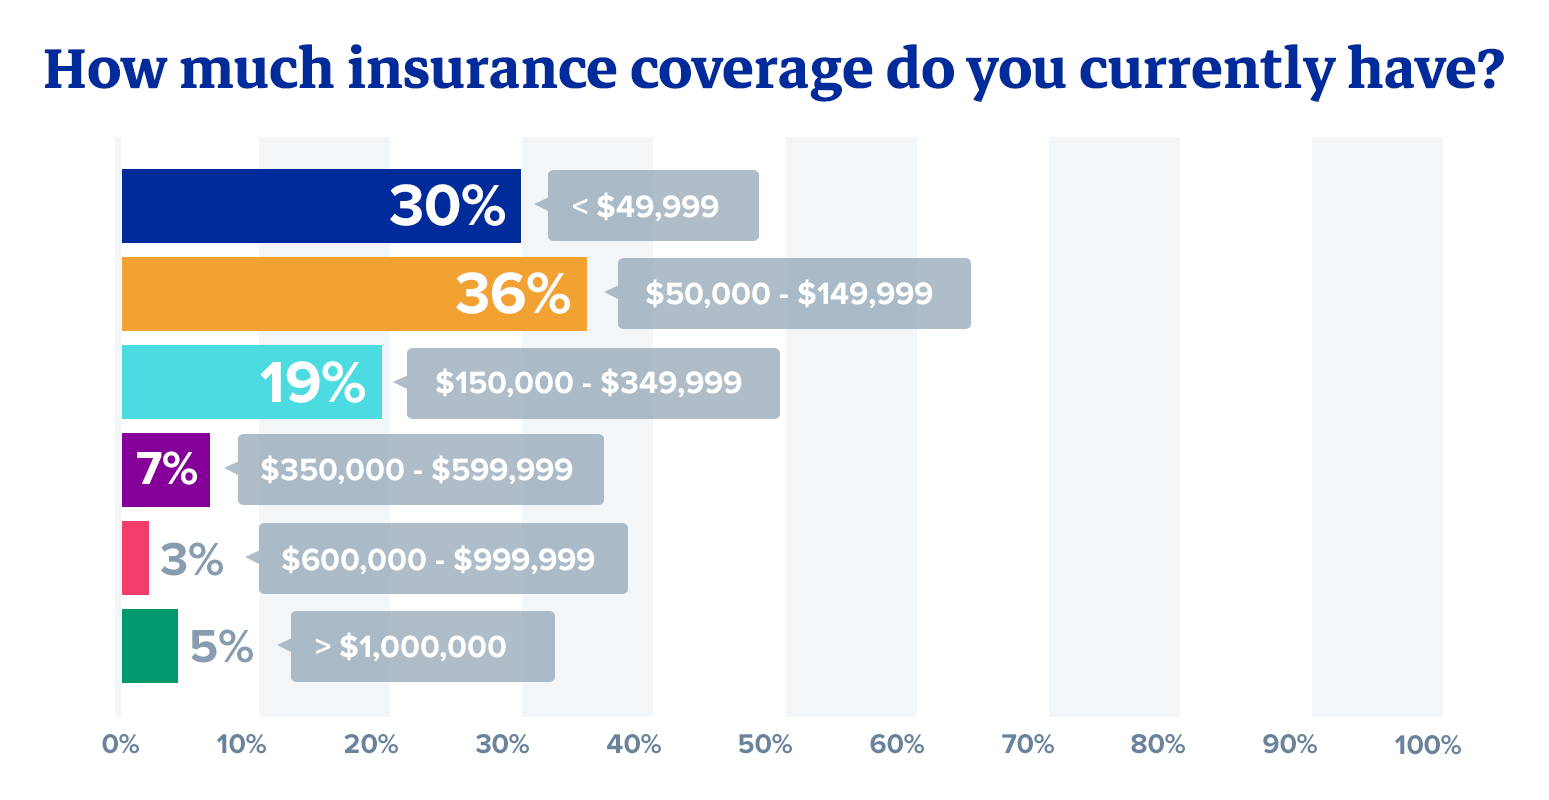 How much insurance coverage do you currently have?